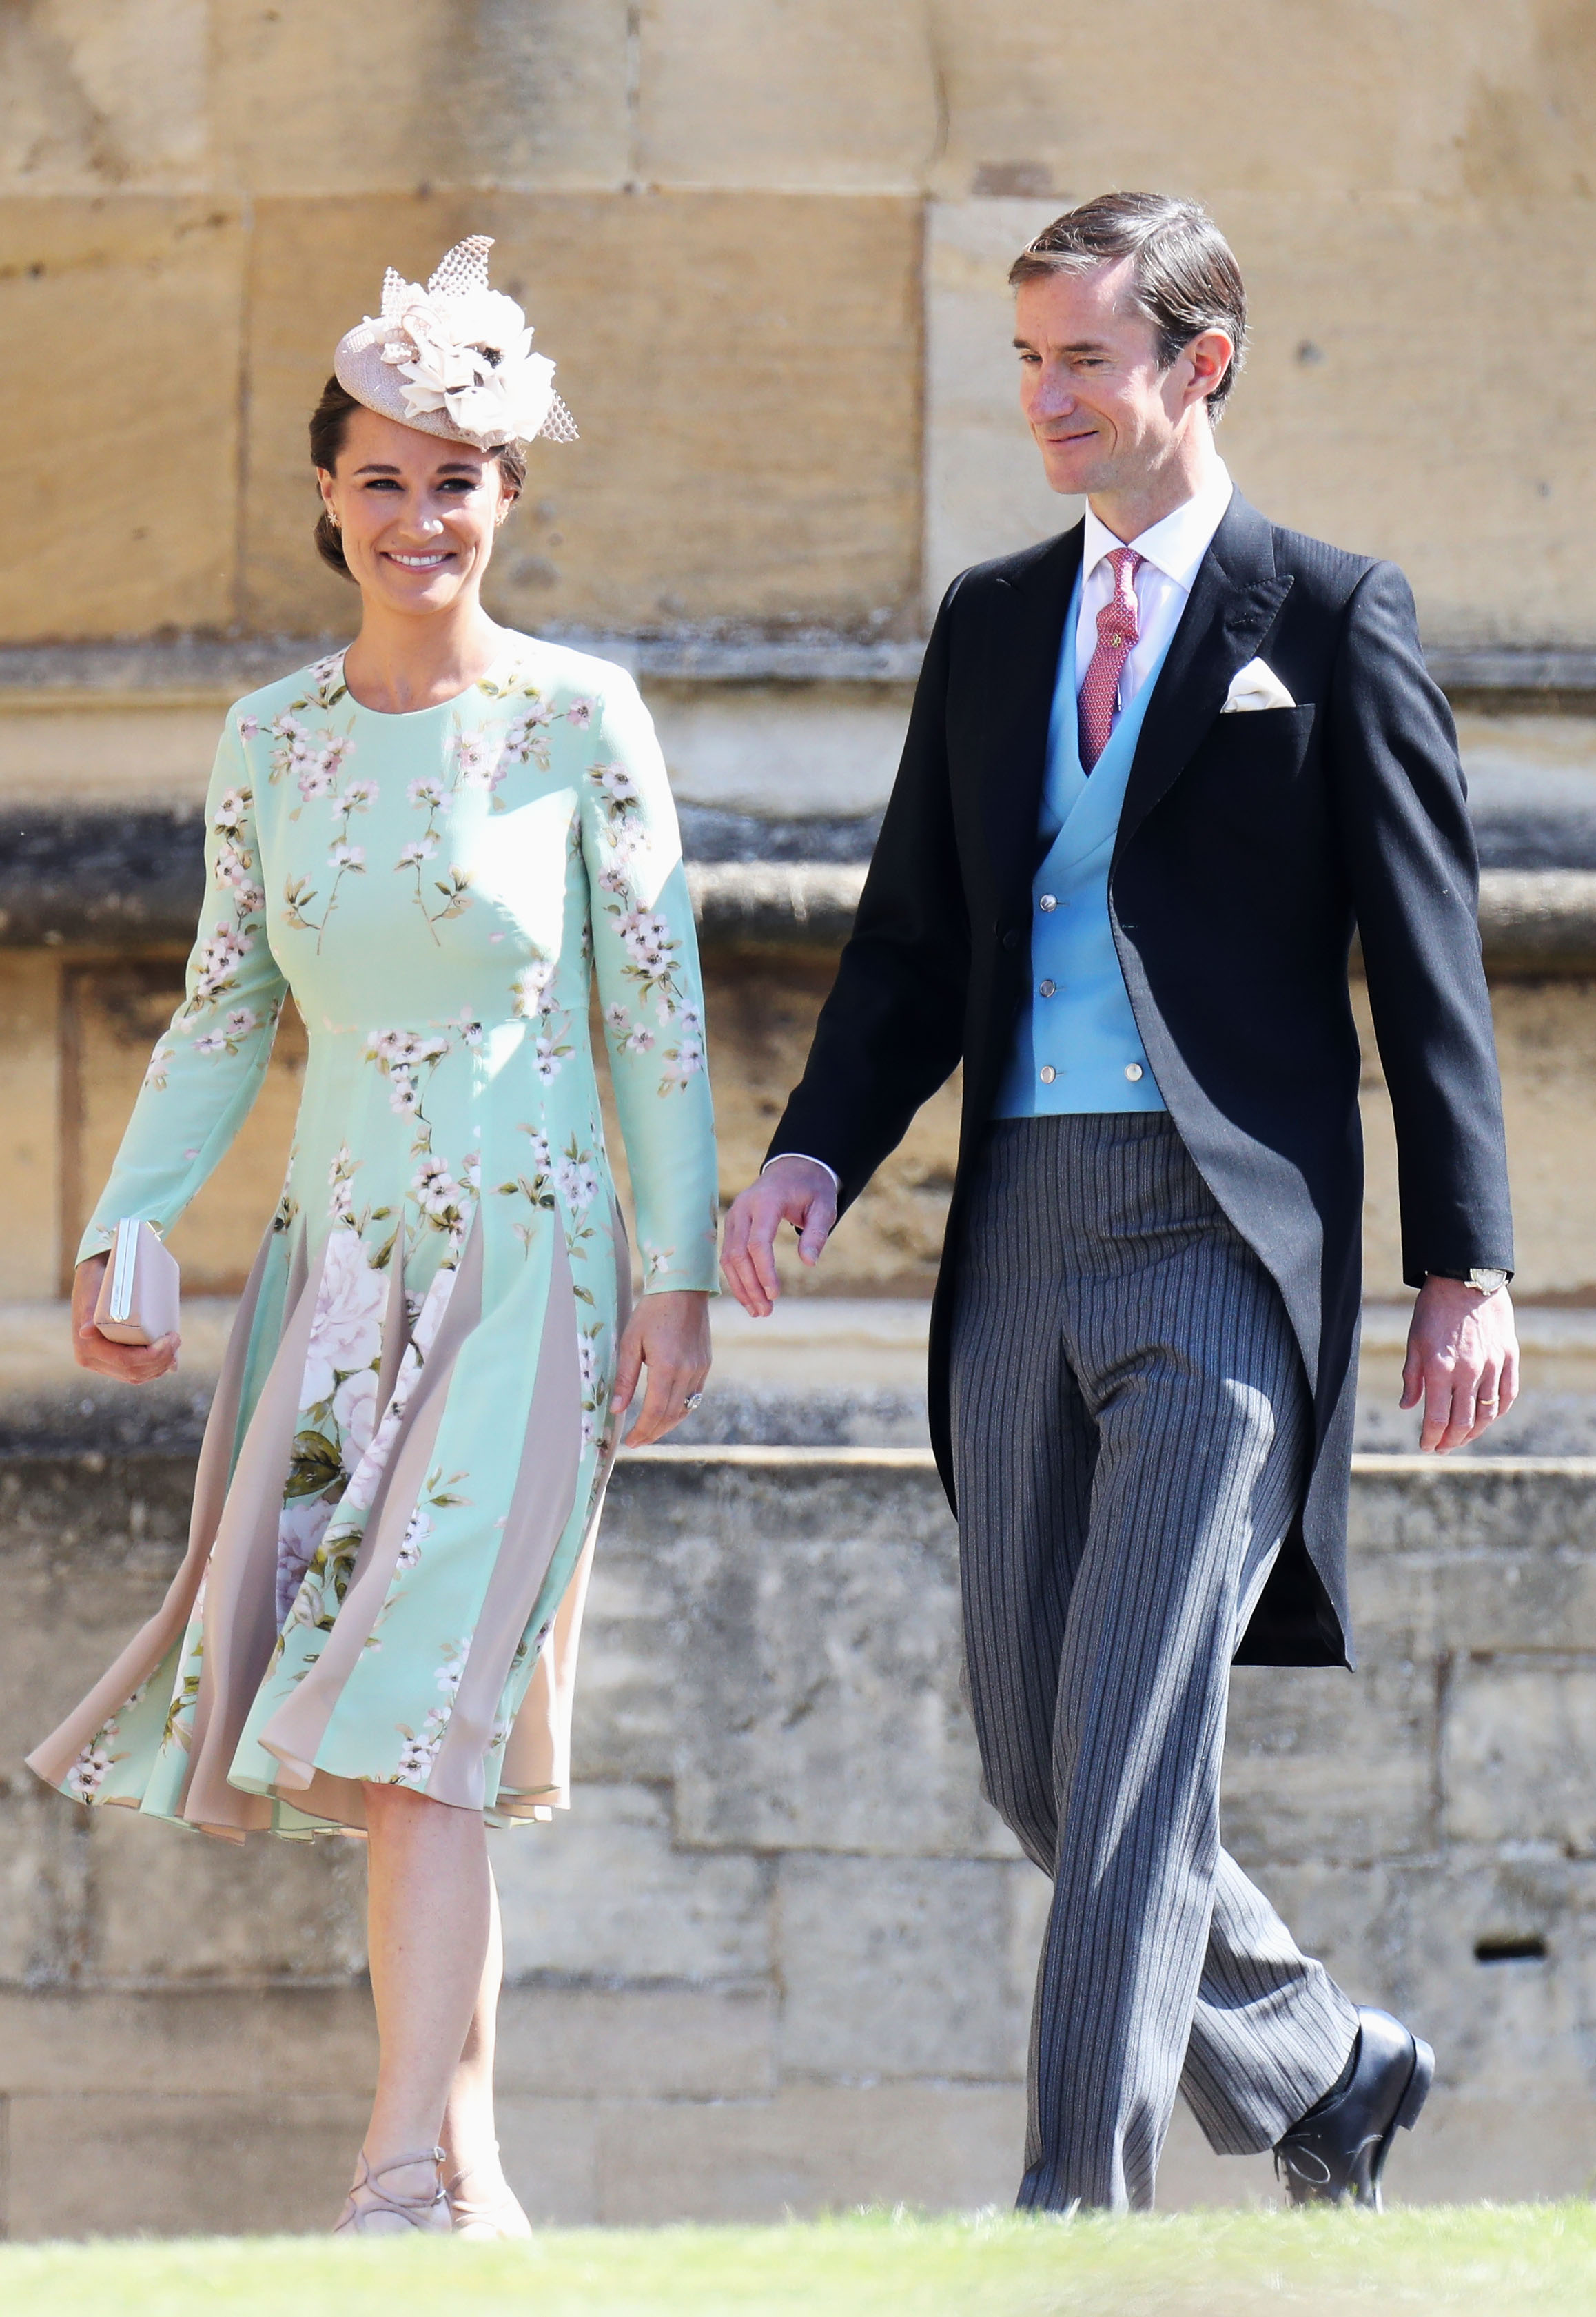 Pippa Middleton Dazzles In Mint Green Floral Dress At